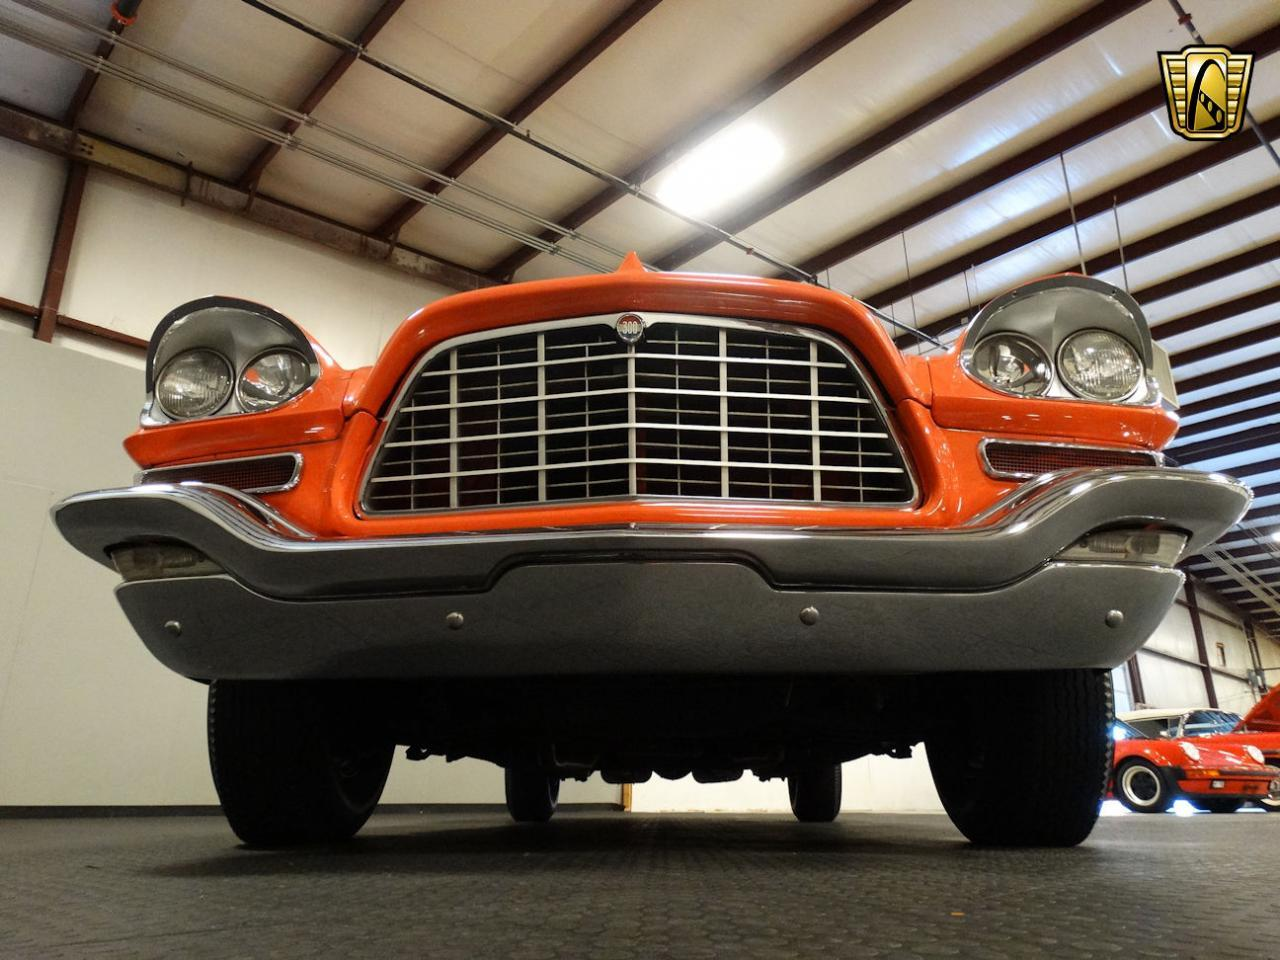 Large Picture of 1957 Chrysler 300 located in Indiana - $44,995.00 Offered by Gateway Classic Cars - Louisville - MACC